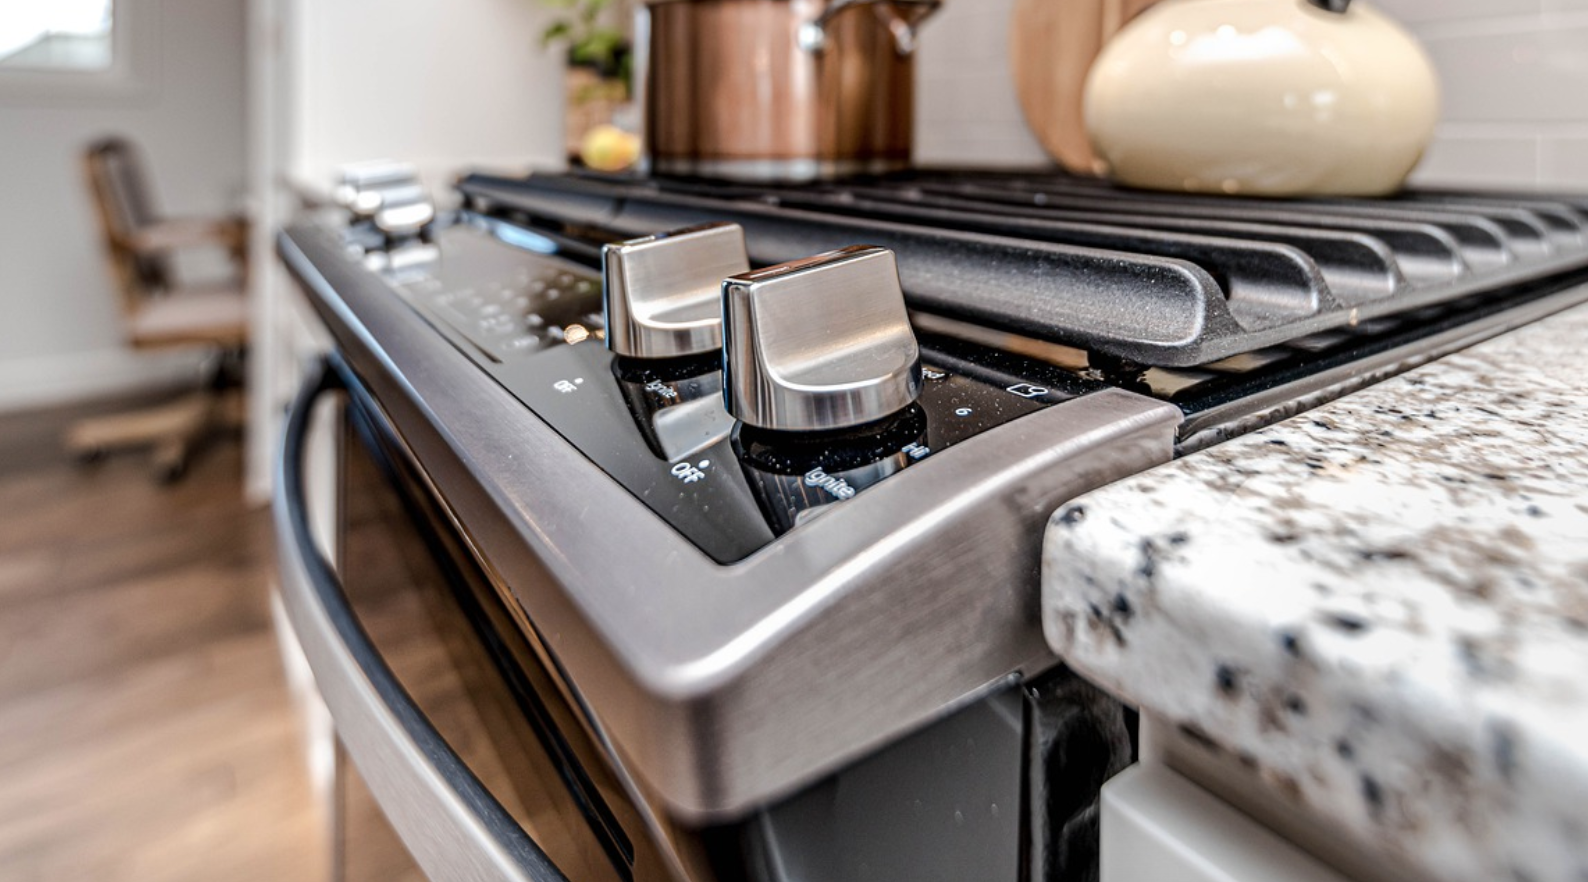 TikTok Video Shows People What The Bottom Drawer Of An Oven Is Actually For - BroBible